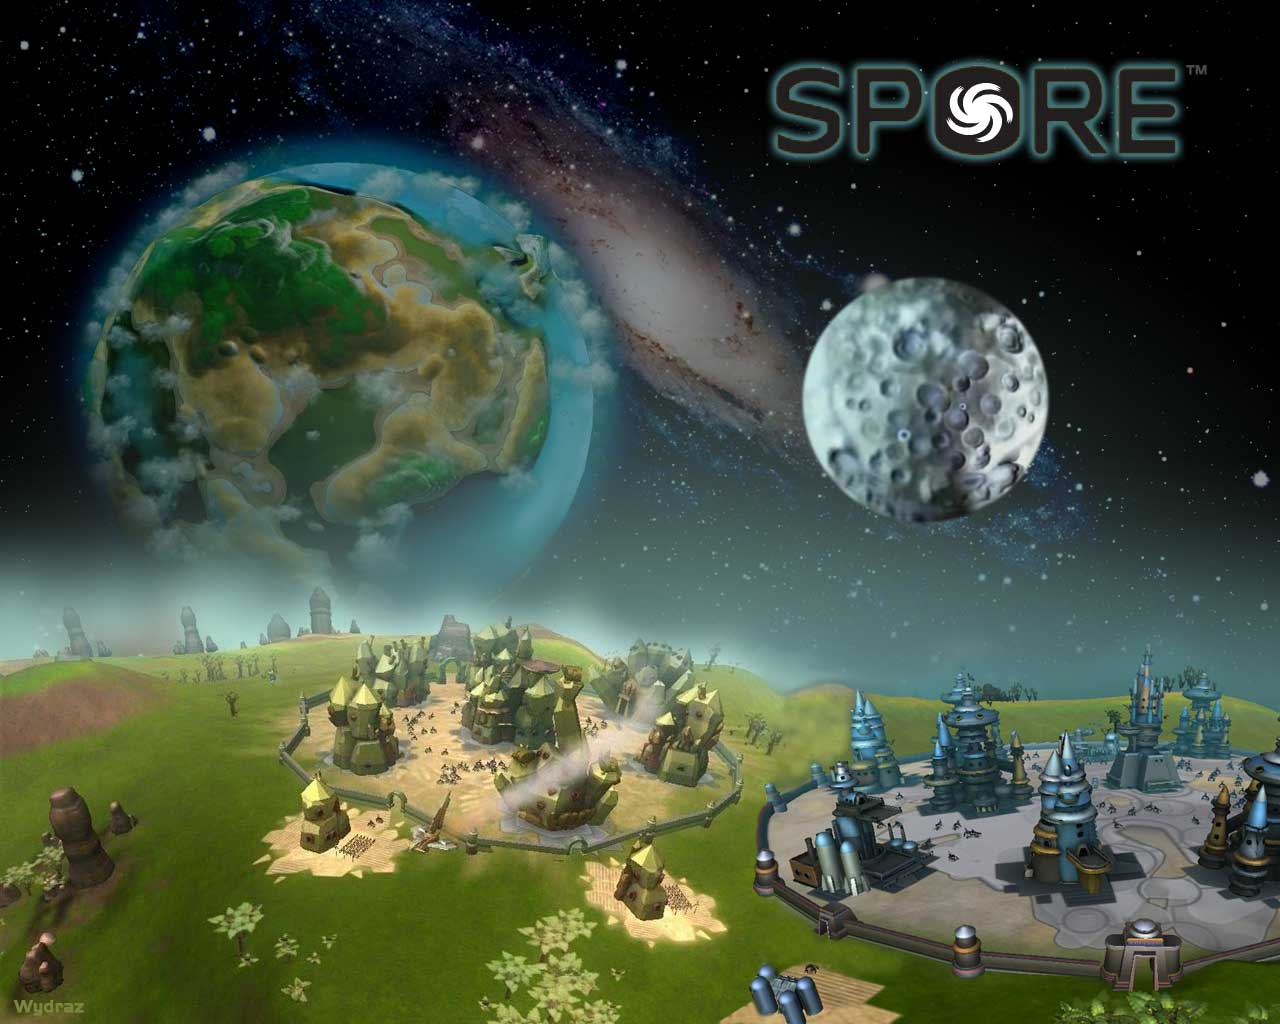 Spore Wallpapers 1280x1024